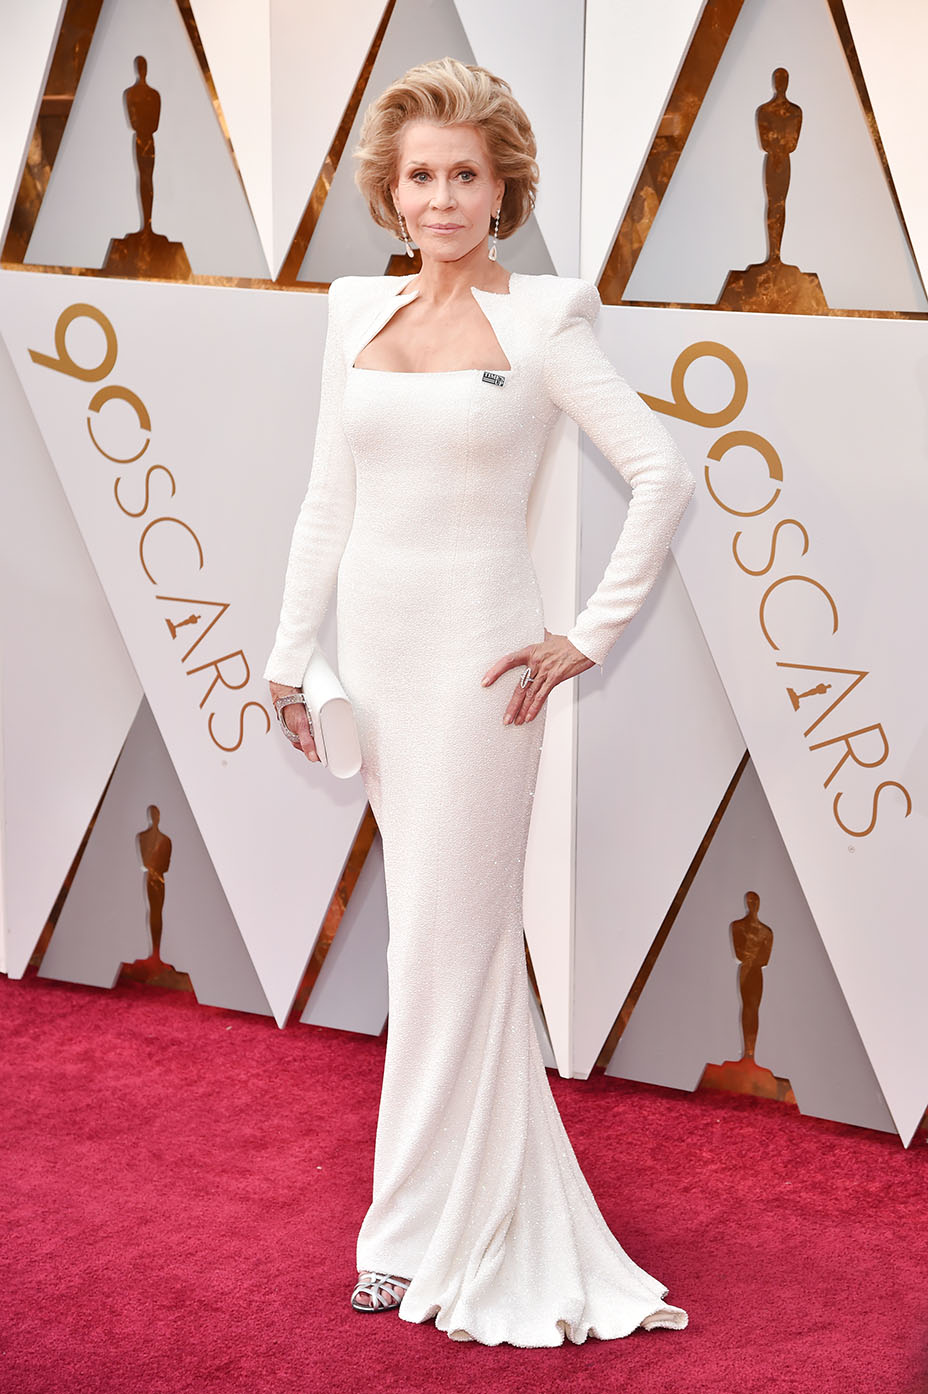 JANE FONDA  | PHOTOGRAPHY Kevin Mazur/Wire Images |   STYLIST Tanya Gill | 44 FRANCOIS PREMIER/Balmain's Couture Capsule Collection White Beaded Dress | CHOPARD Jewelry | SALVATORE FERRAGAMO Shoes | PERRIN PARRIS Clutch |